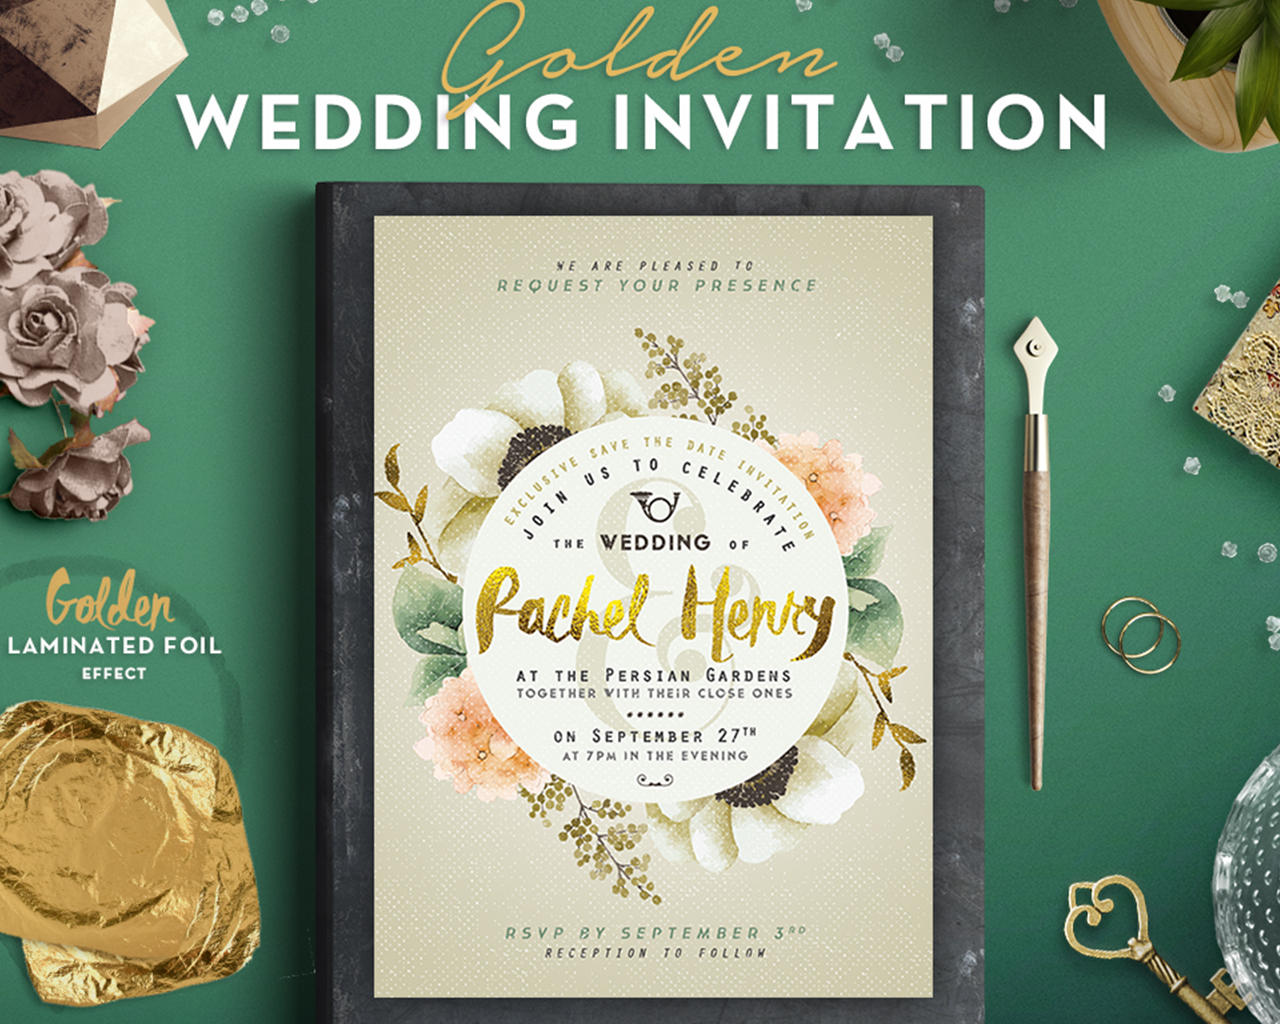 Deluxe Foliage Wedding Invitation Design by lavie1blonde - 98944